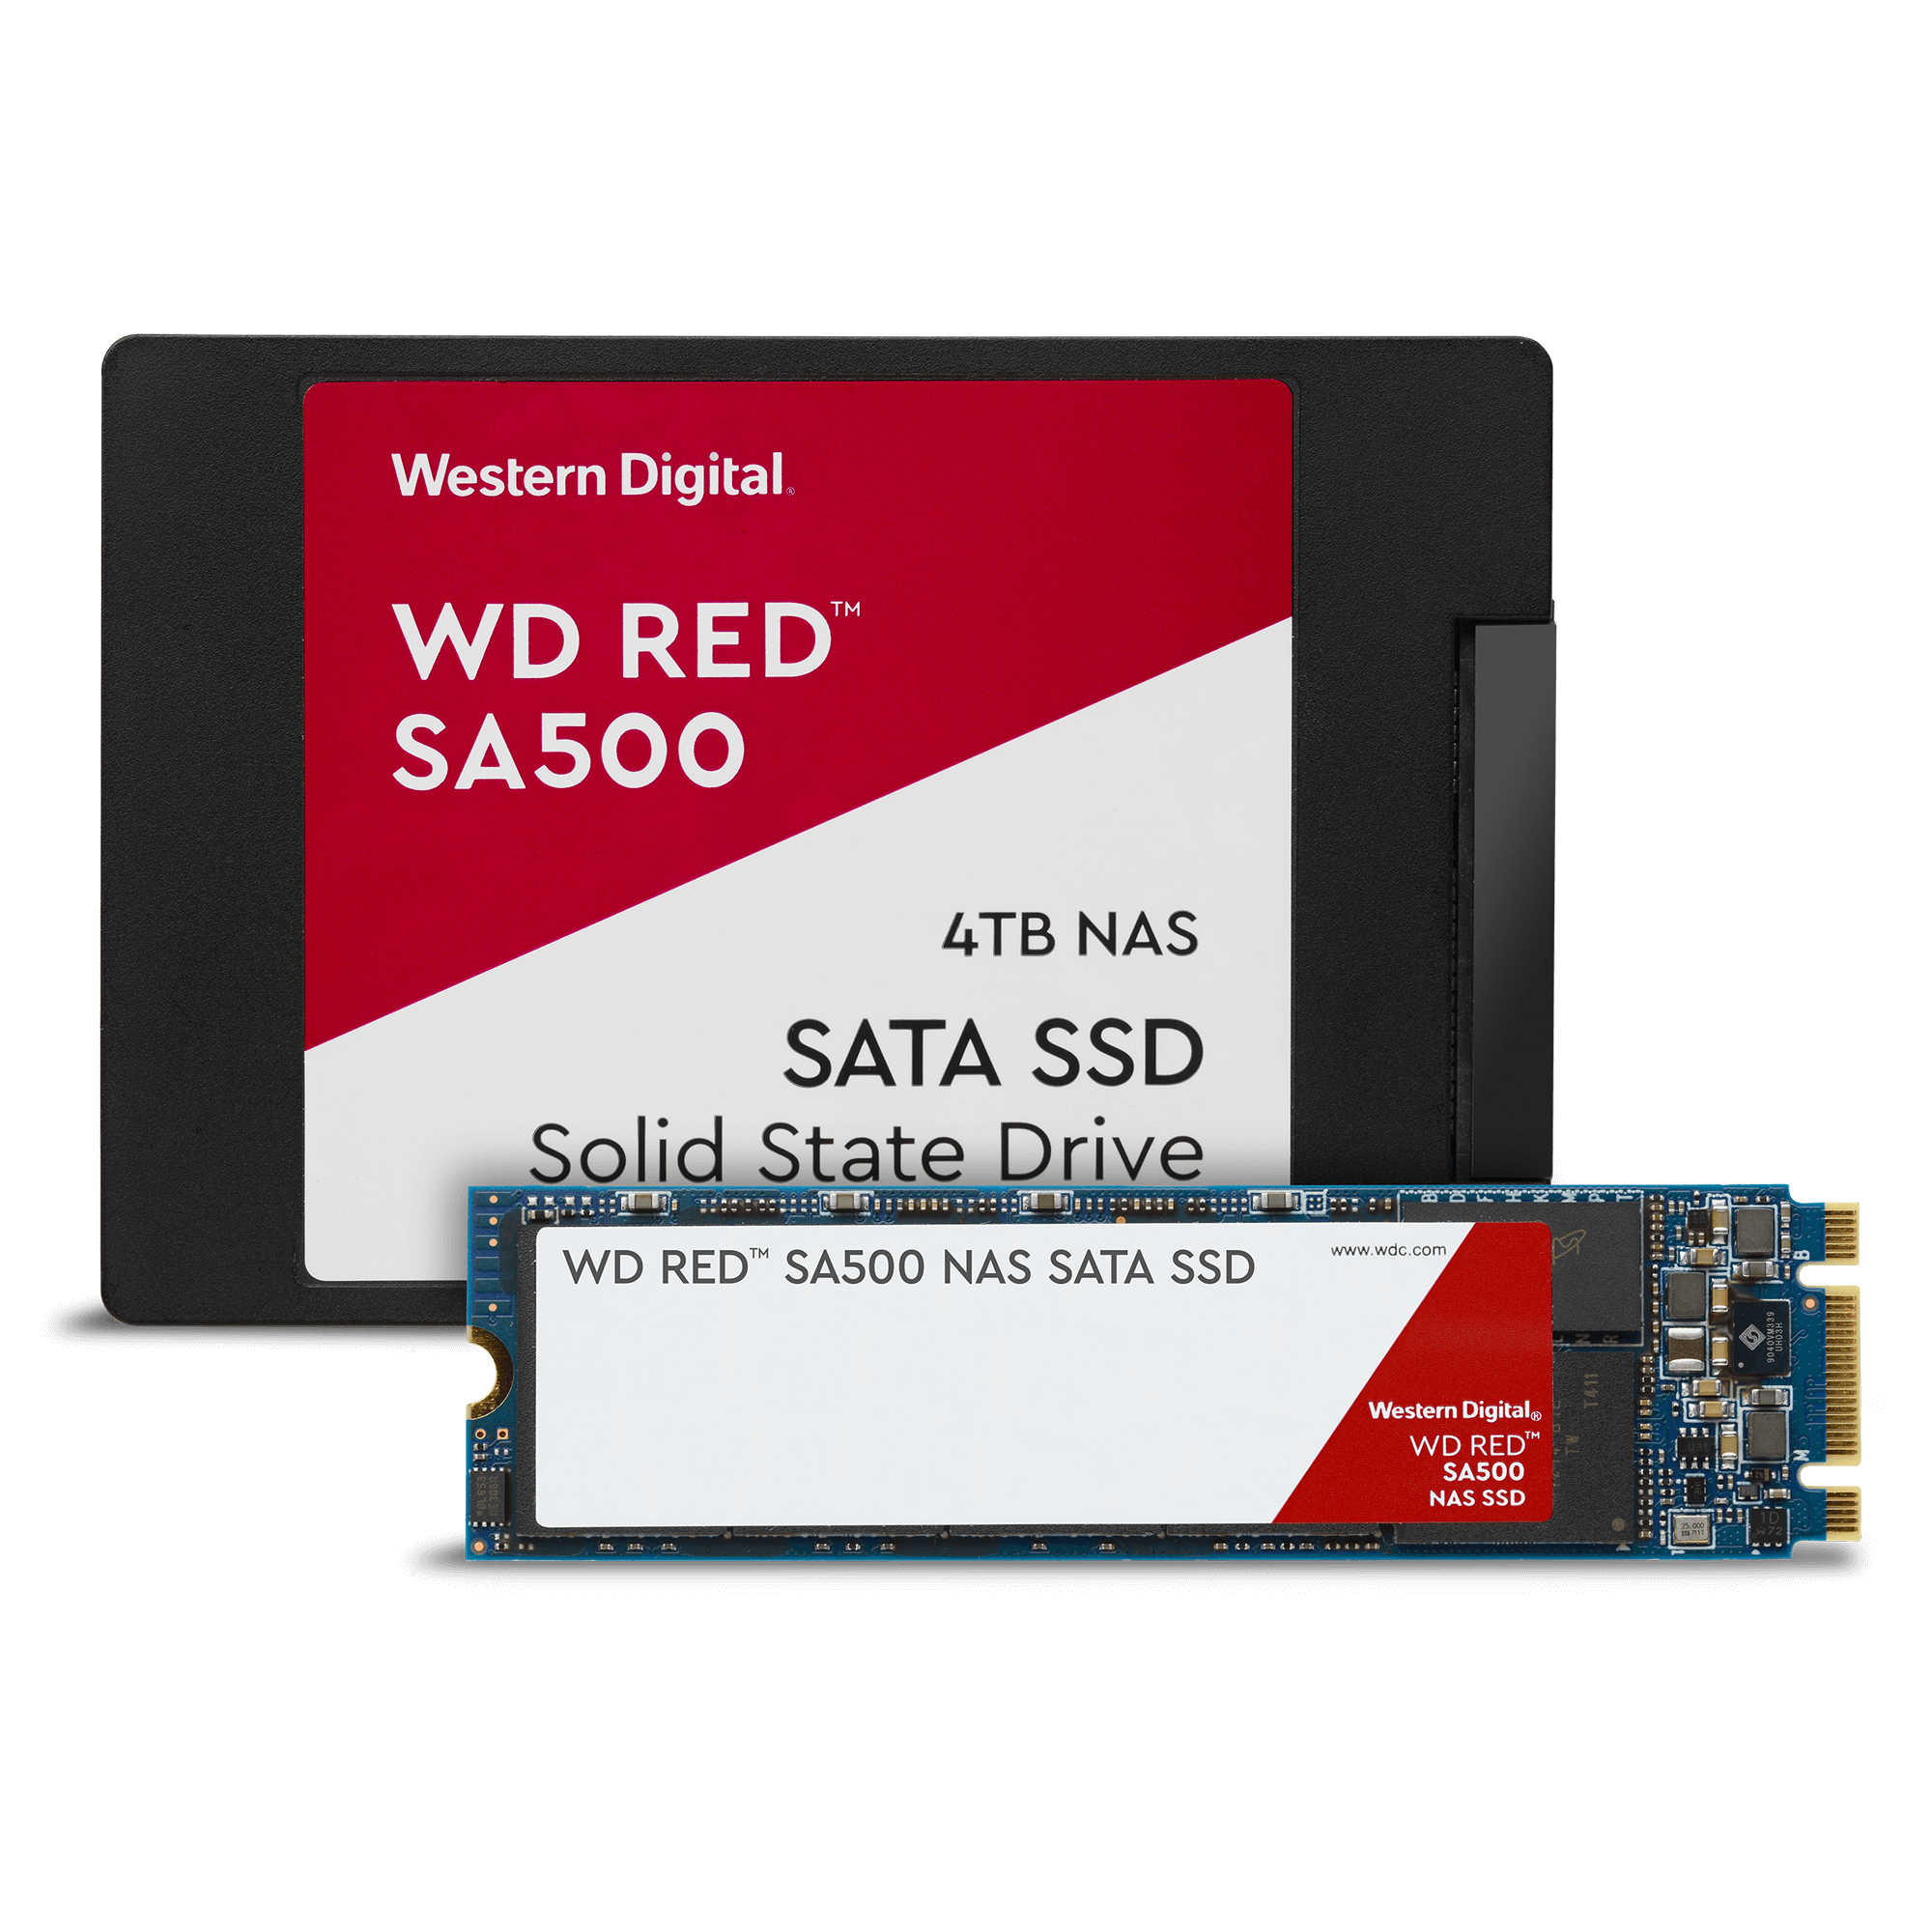 New WD RED SSDs have arrived